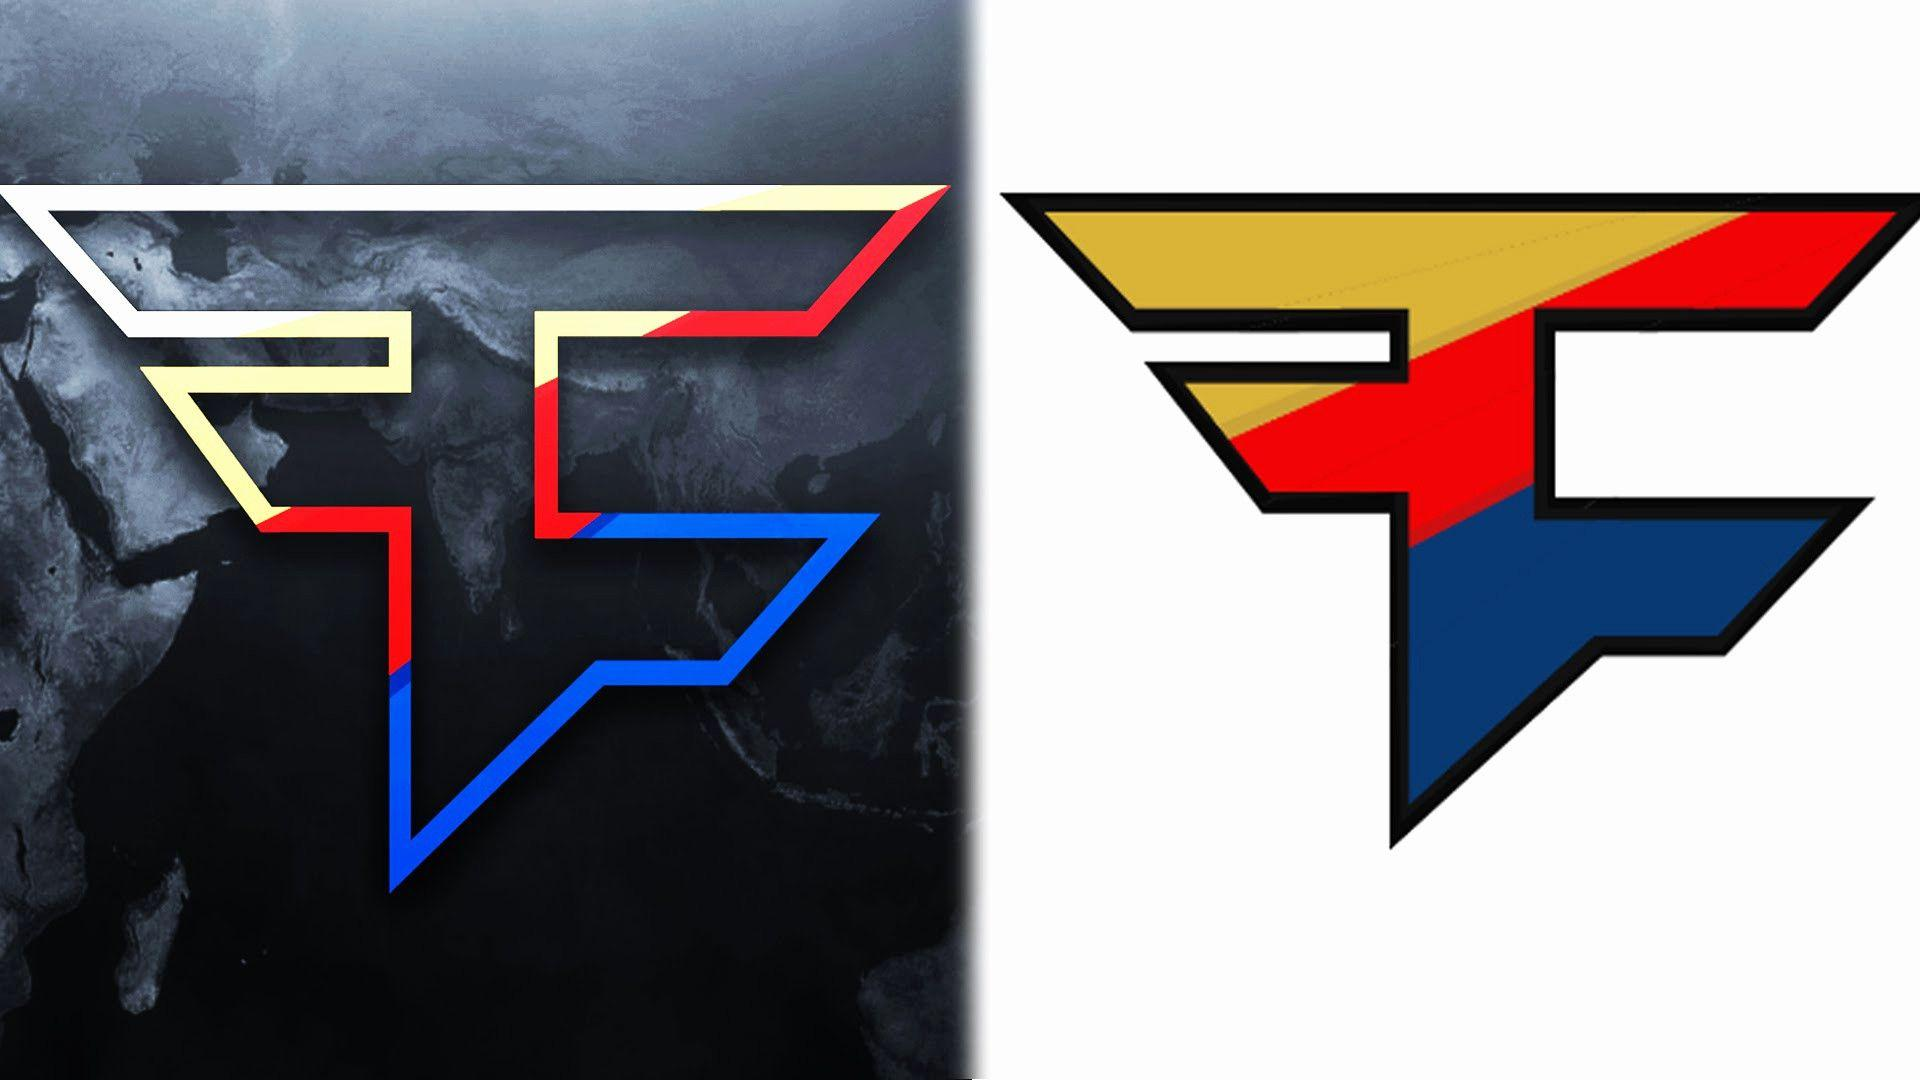 77+ Faze Rug Wallpapers